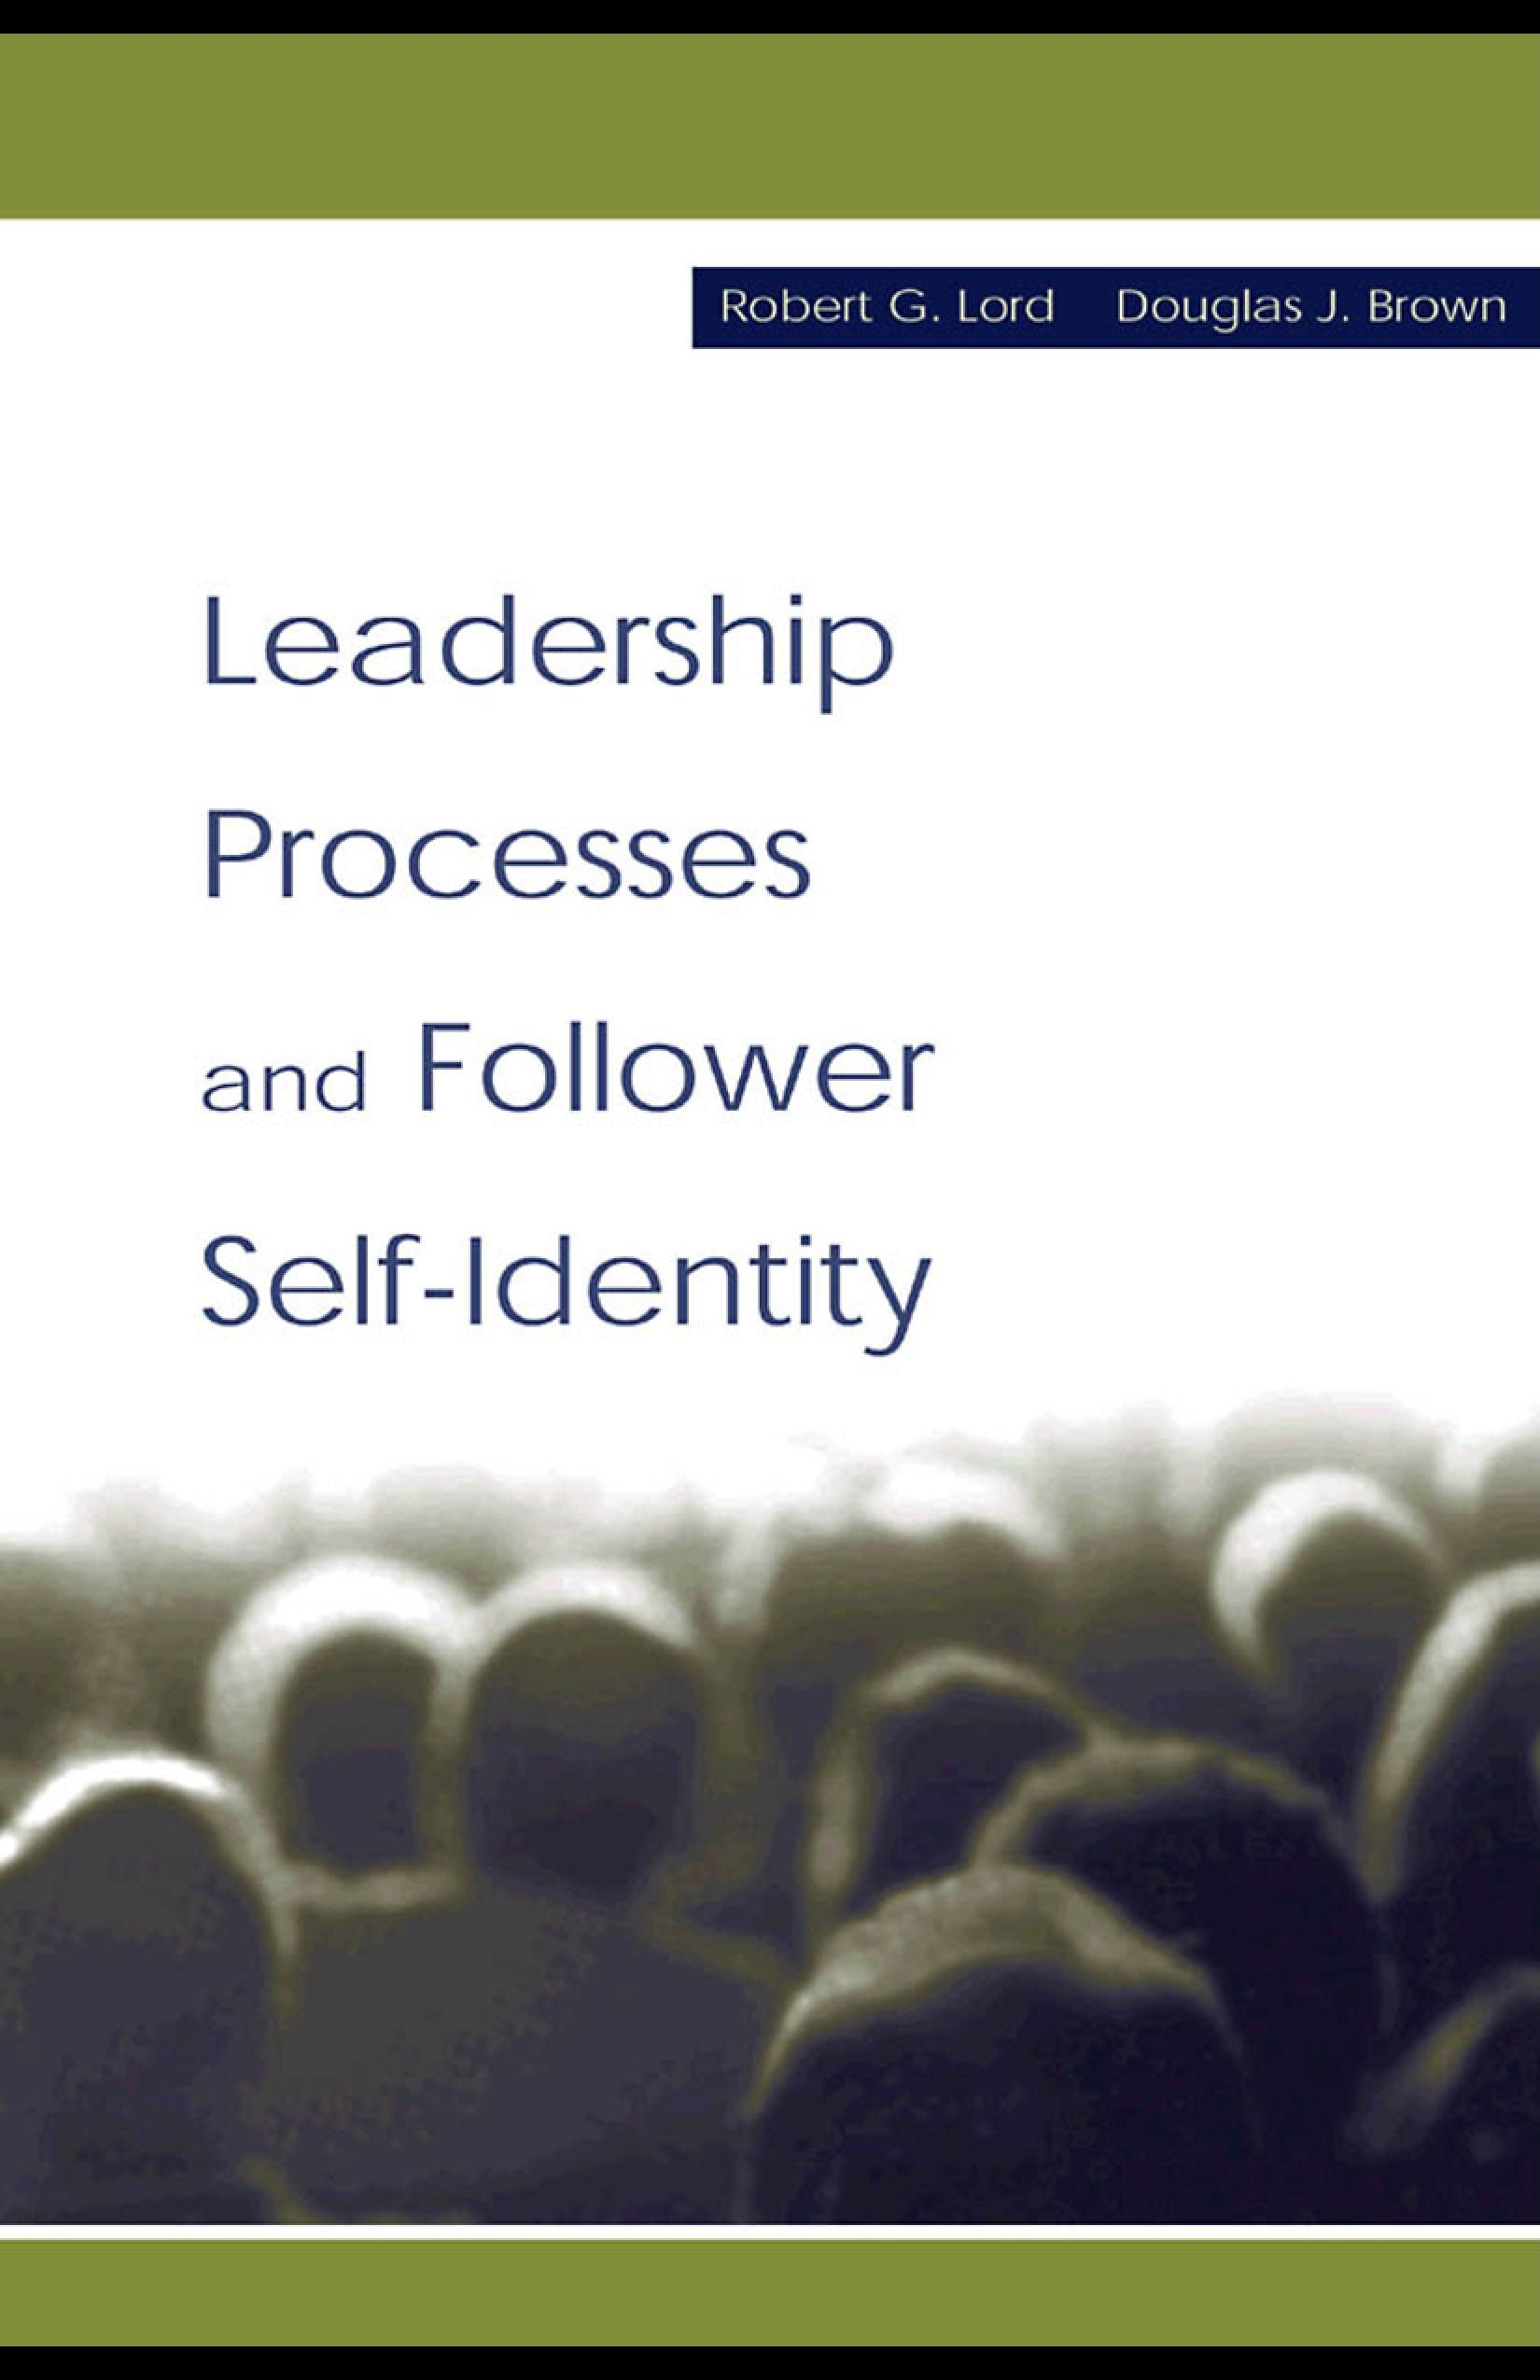 Leadership Processes and Follower Self-identity EB9781410608864